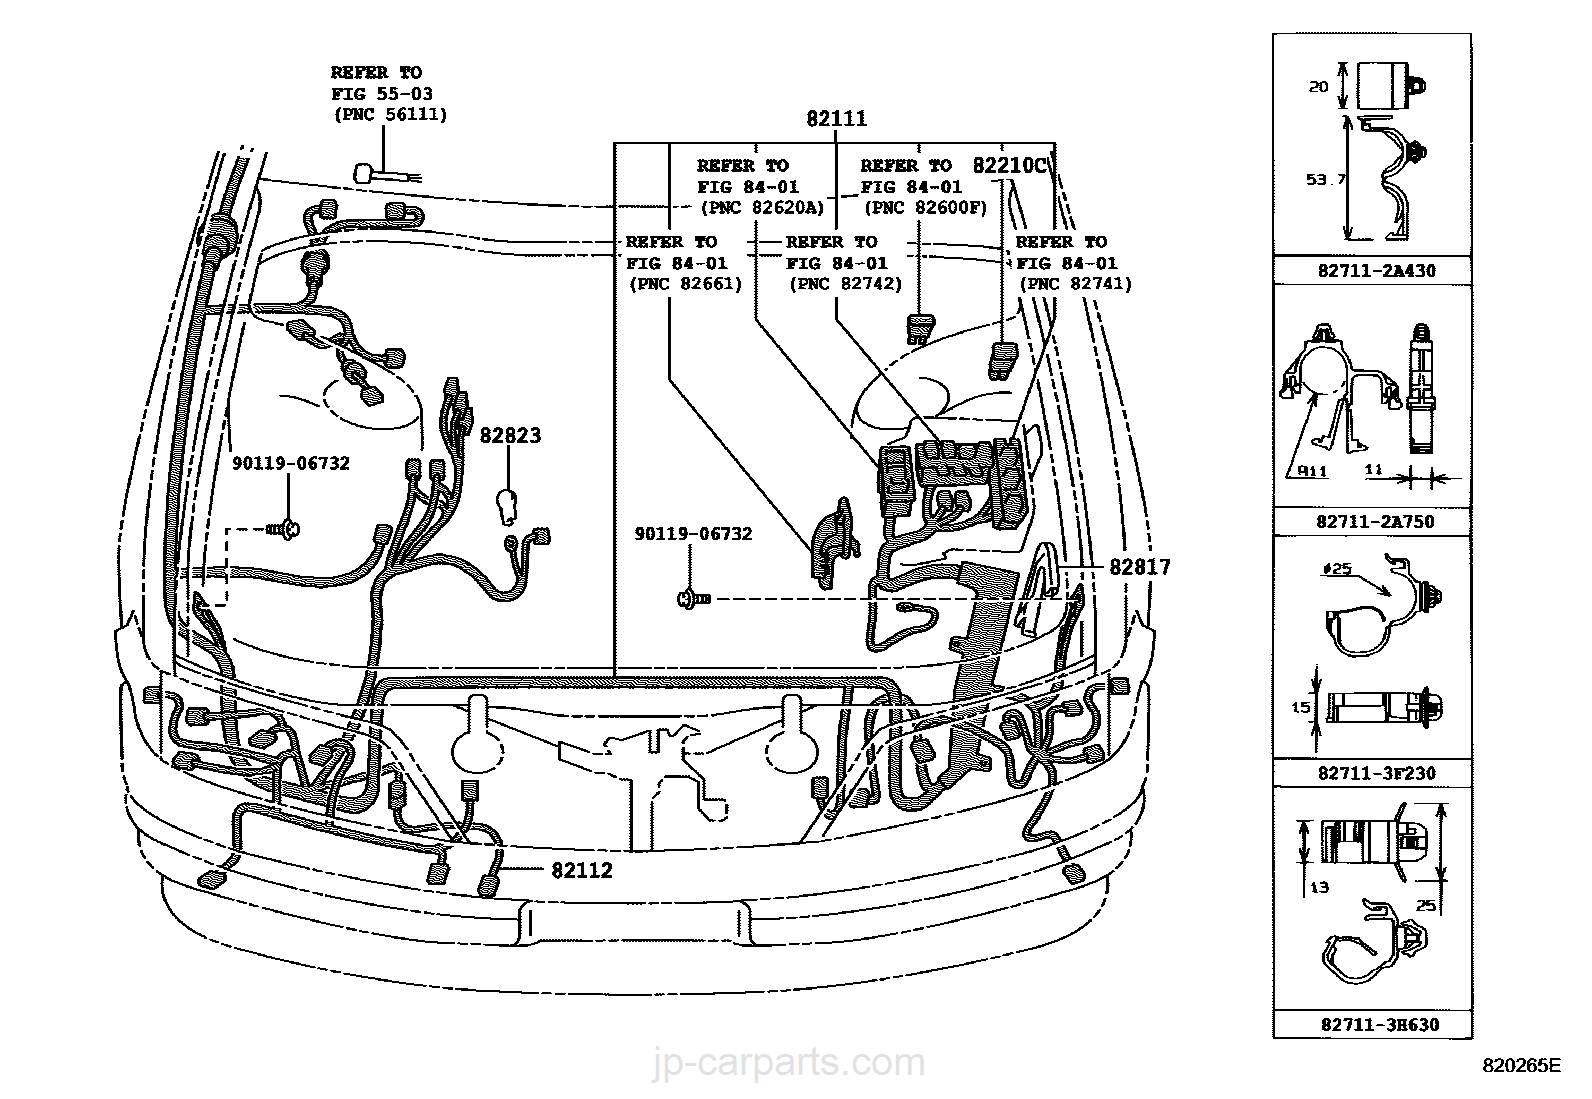 hight resolution of toyota chaser jzx100 wiring diagram